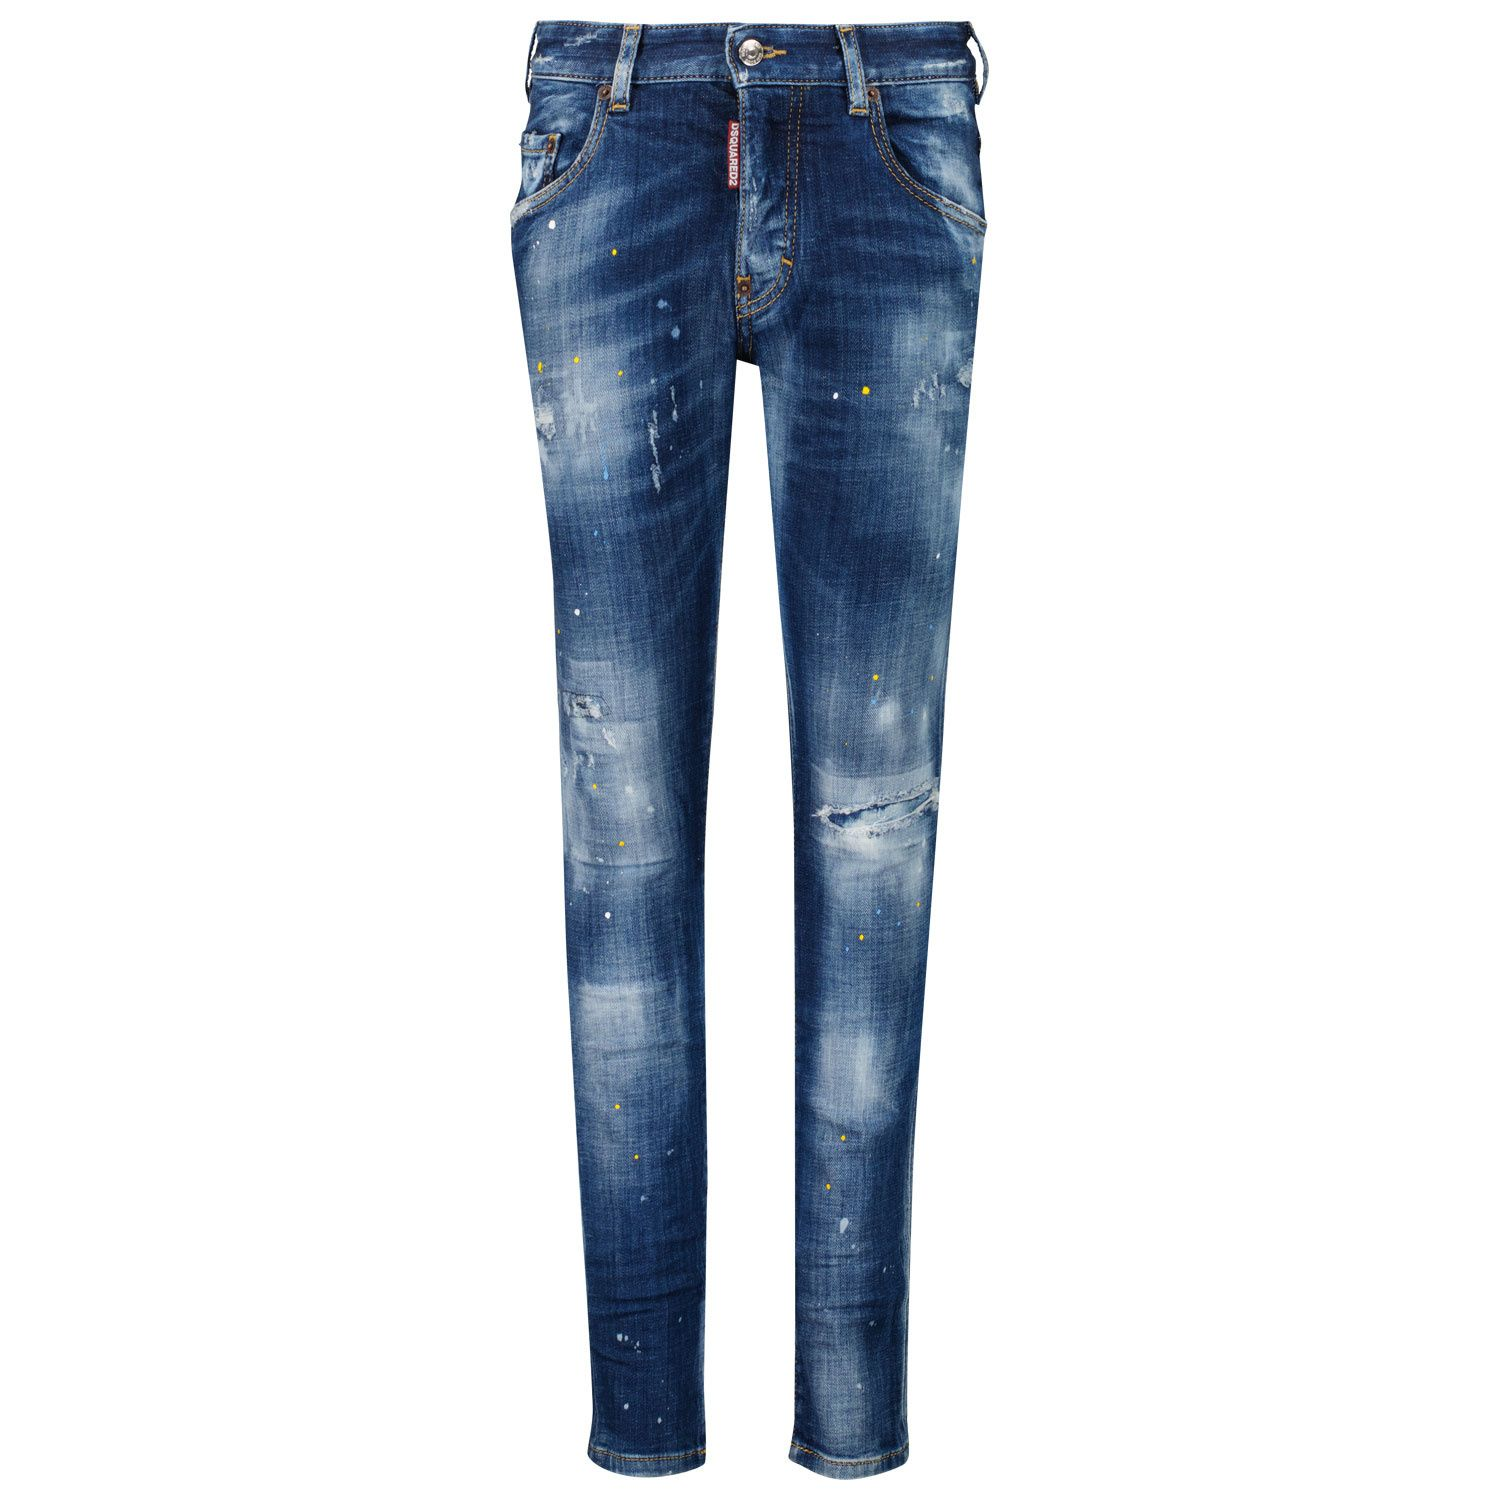 Picture of Dsquared2 DQ03LD D007U kids jeans jeans